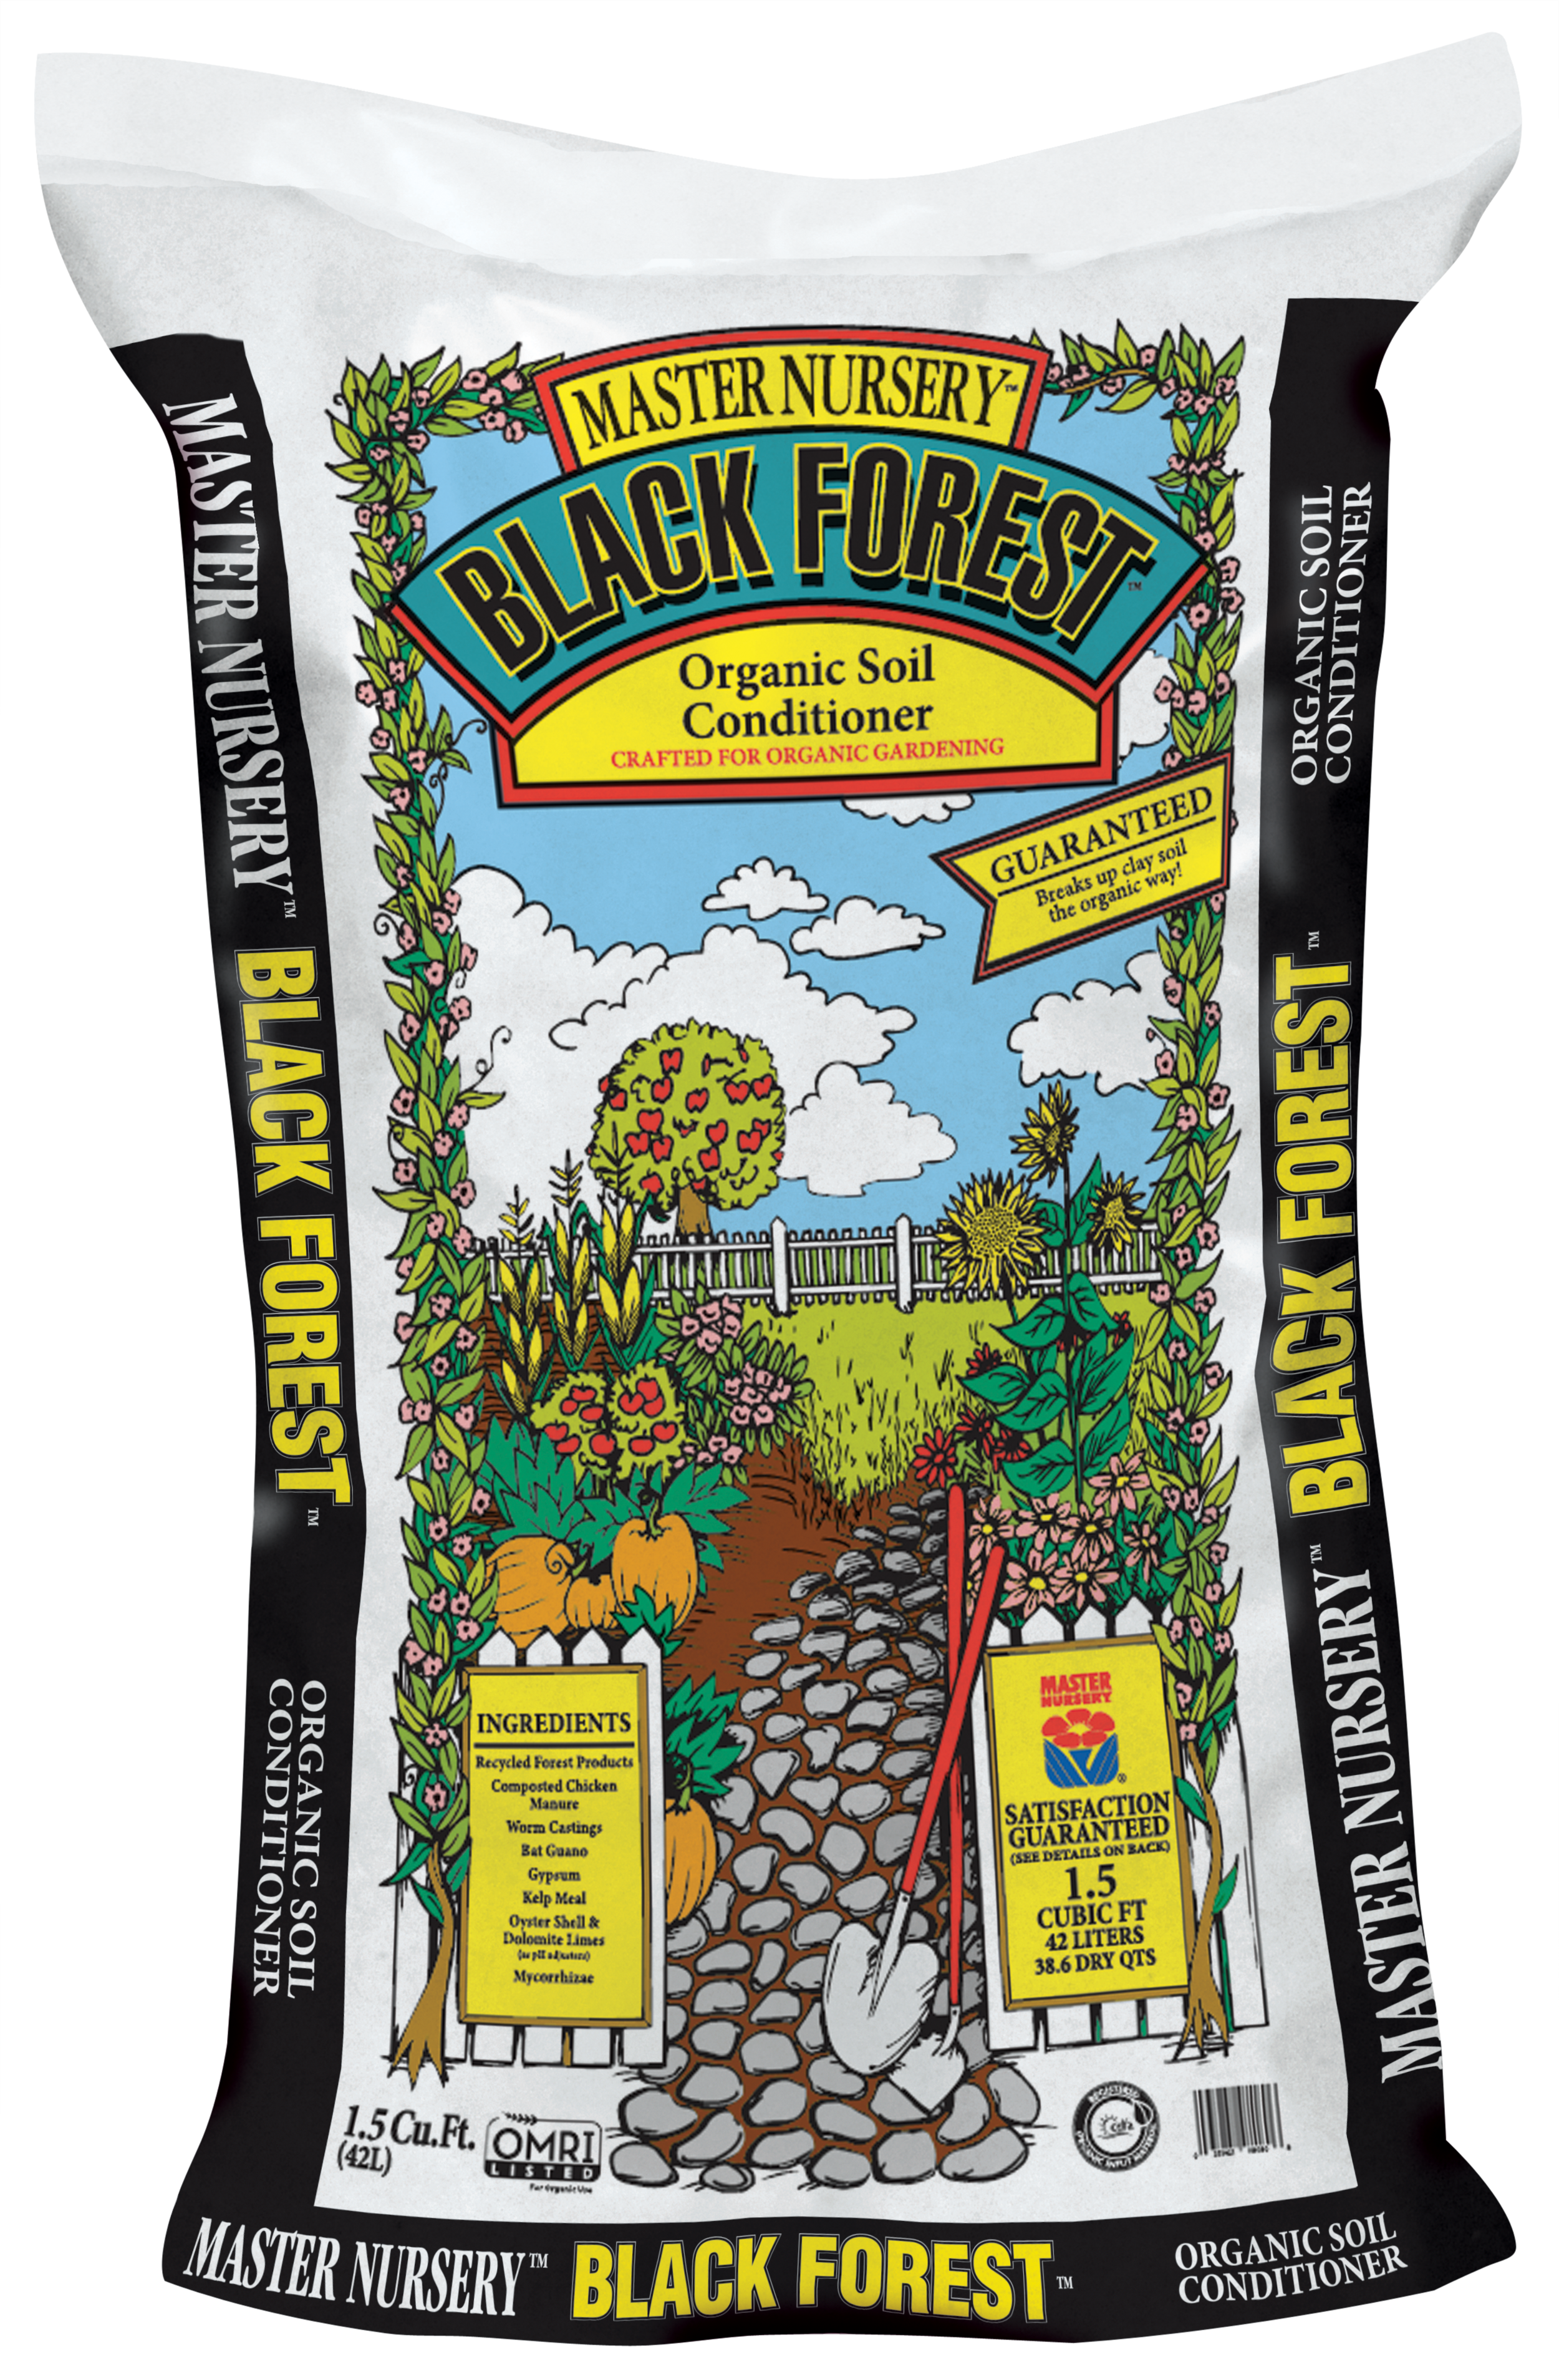 Master-Nursery-1.5-cu.-ft.-Black-Forest-Organic-Soil-Conditioner-8080.png